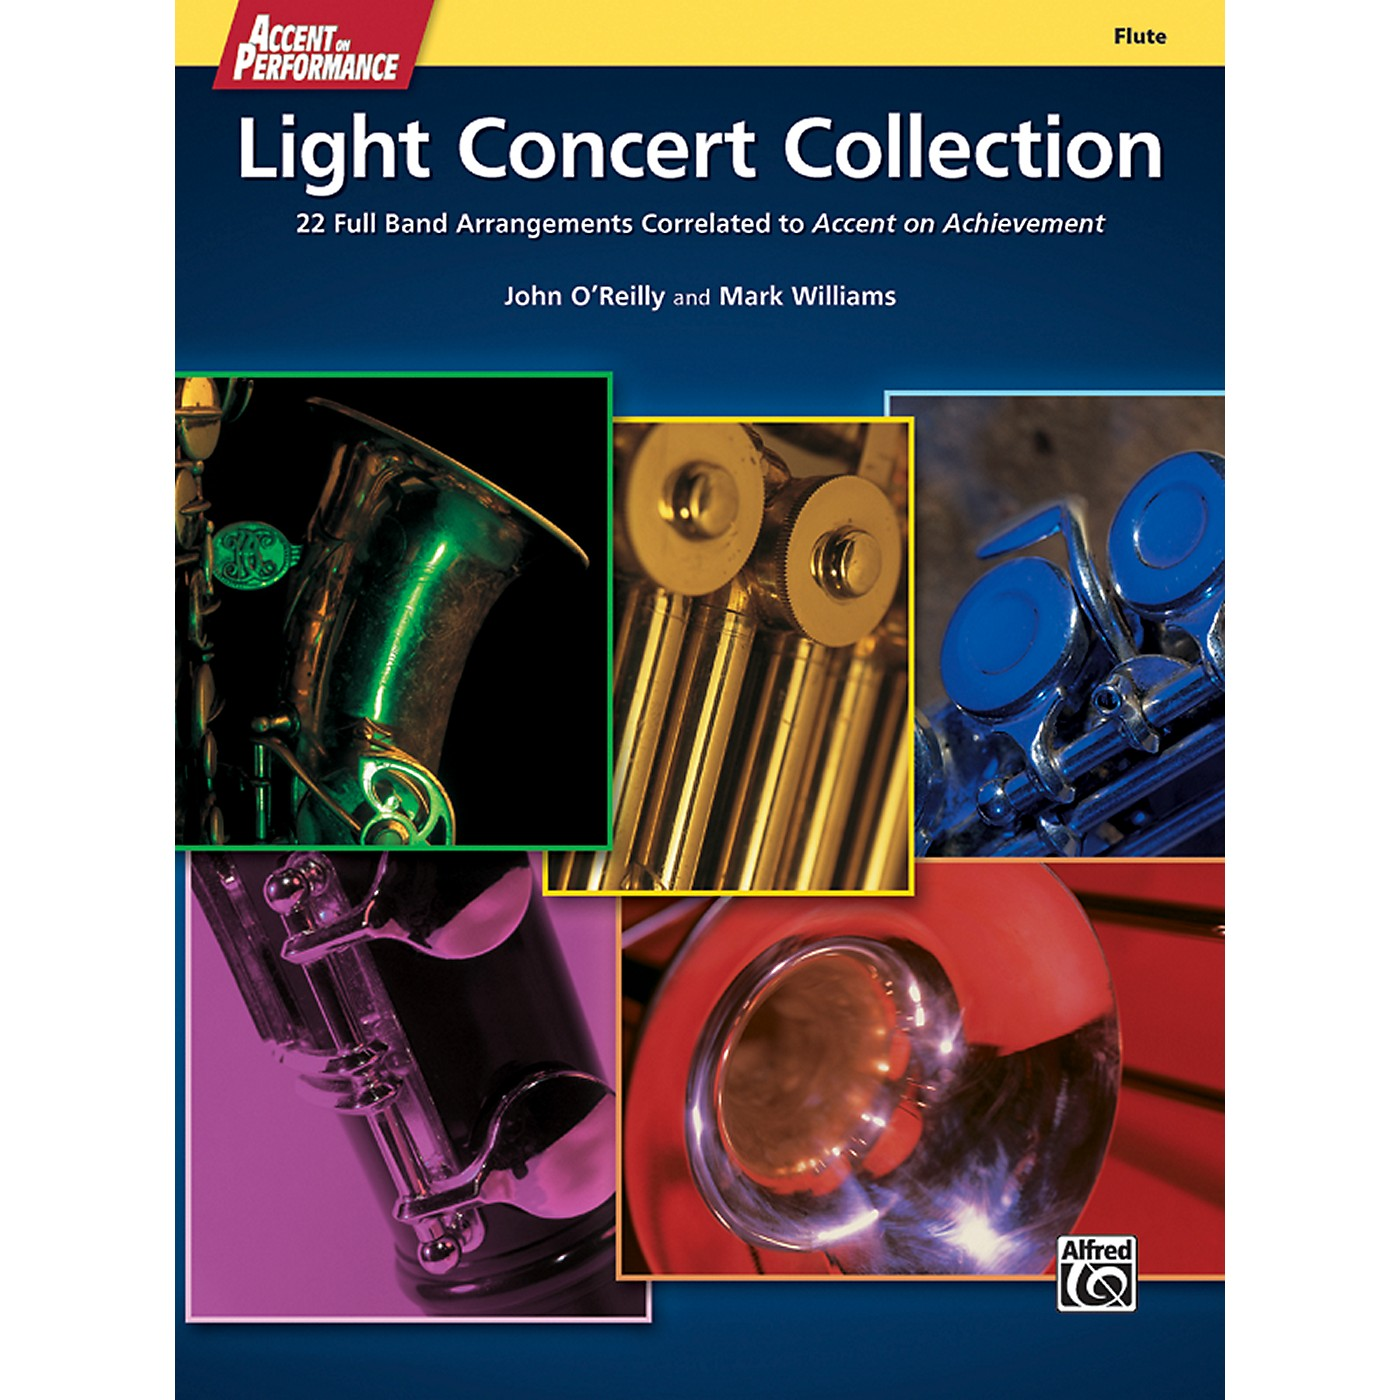 Alfred Accent on Performance Light Concert Collection Flute Book thumbnail